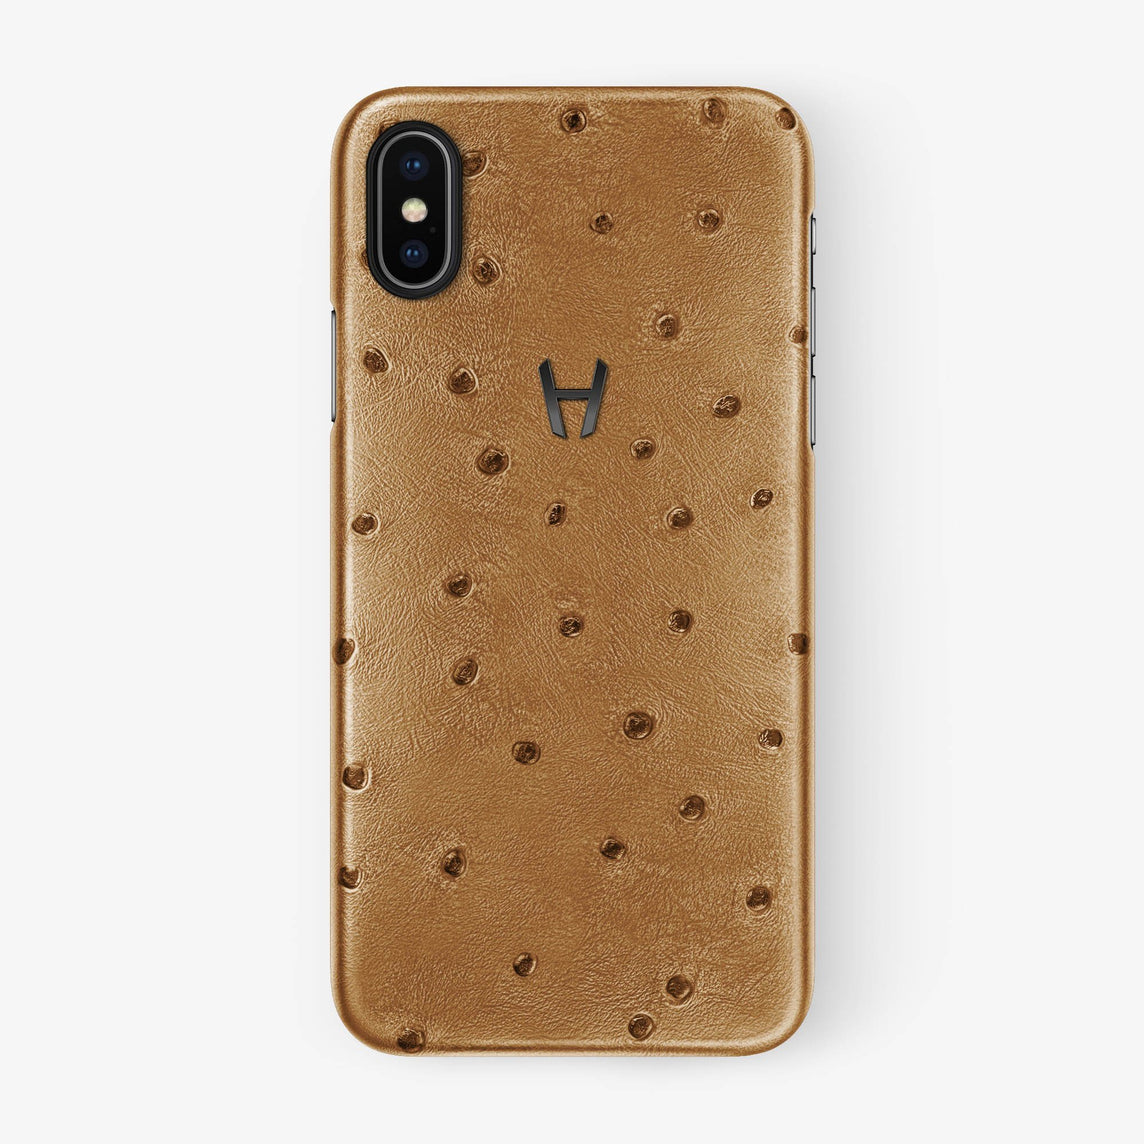 Ostrich Case iPhone X/Xs | Chestnut - Black withouth-personalization